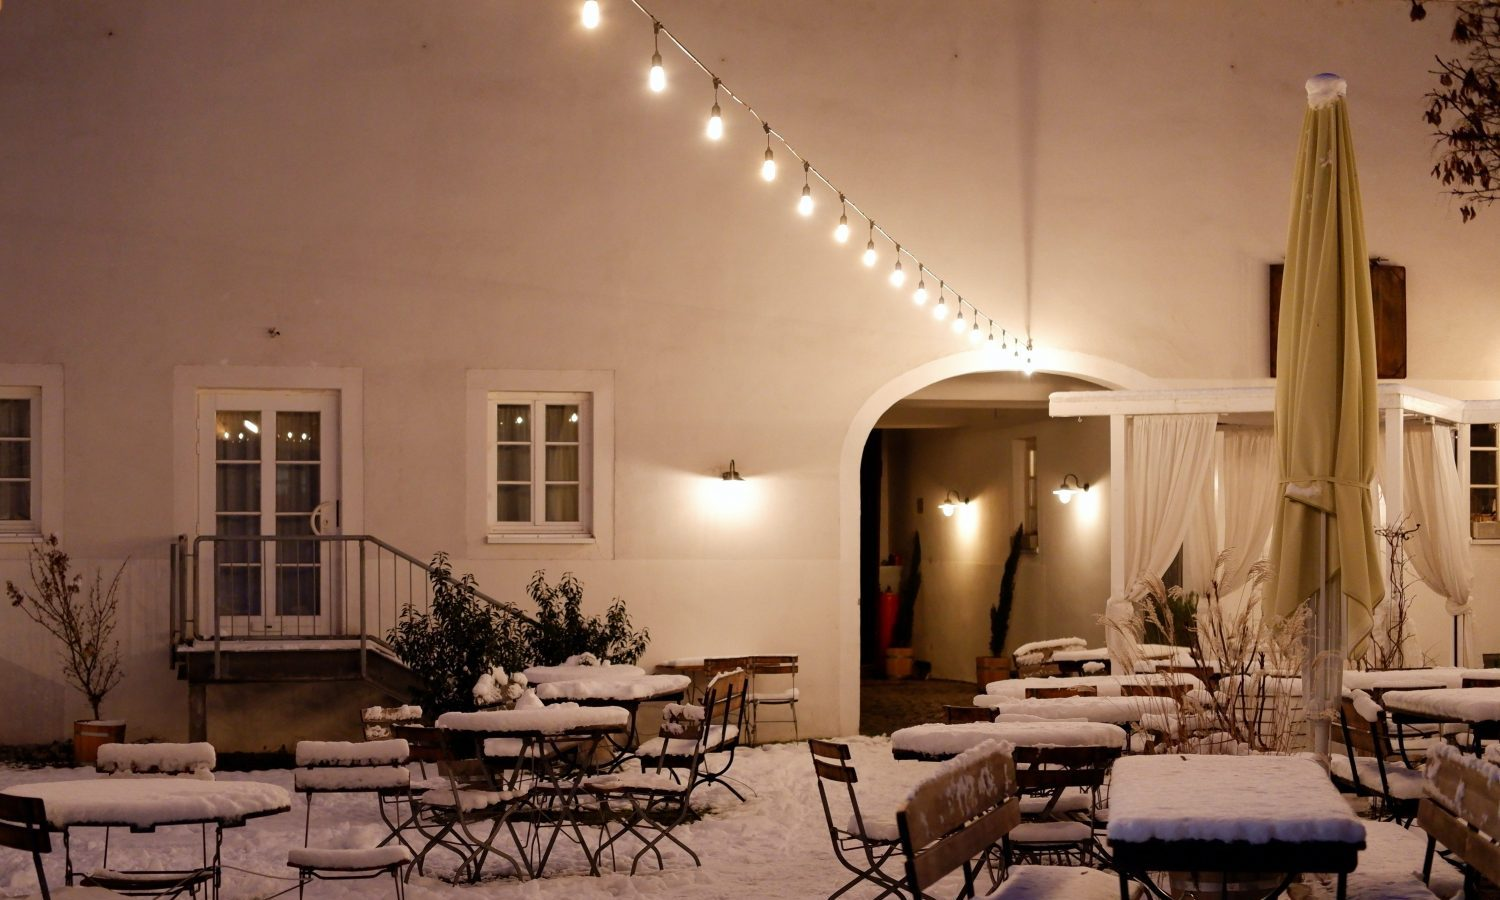 Outdoor Dining In The Winter Is Complicated — Here's What You Should Account For